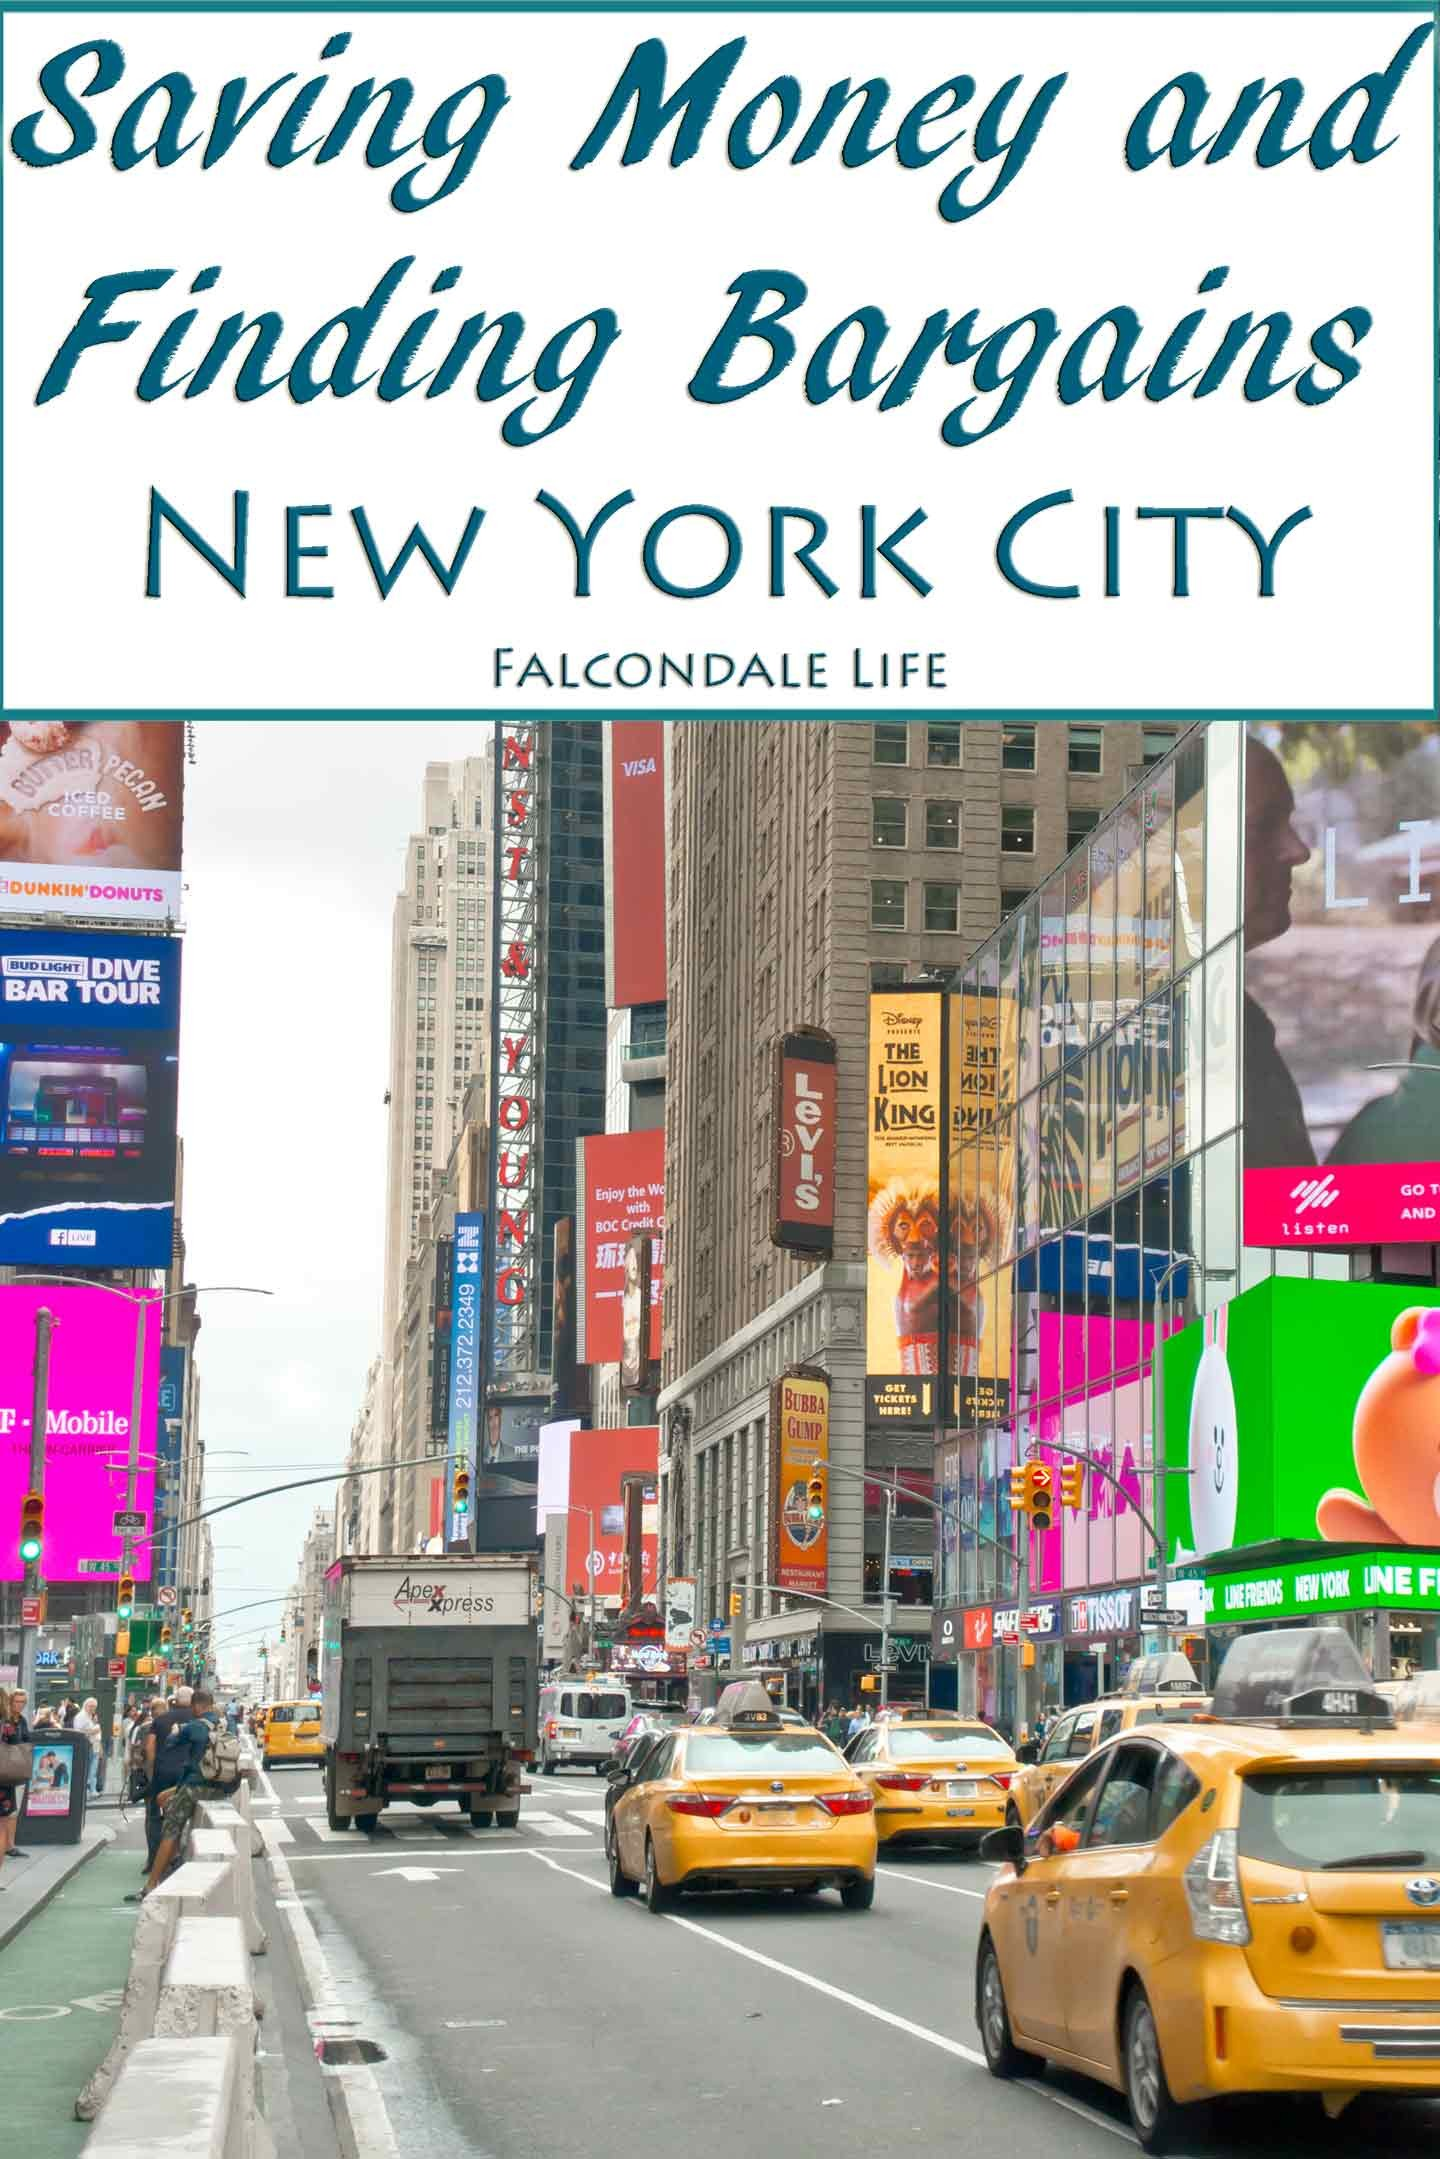 Saving money and finding bargains on a trip to New York City on Falcondale Life blog. We had a great time visiting New York City, stayng in a hotel and seeing the sights. Going to the USA on holiday is quite an expensive trip so we were looking for ways to save money and came up with these tips for family travelers.